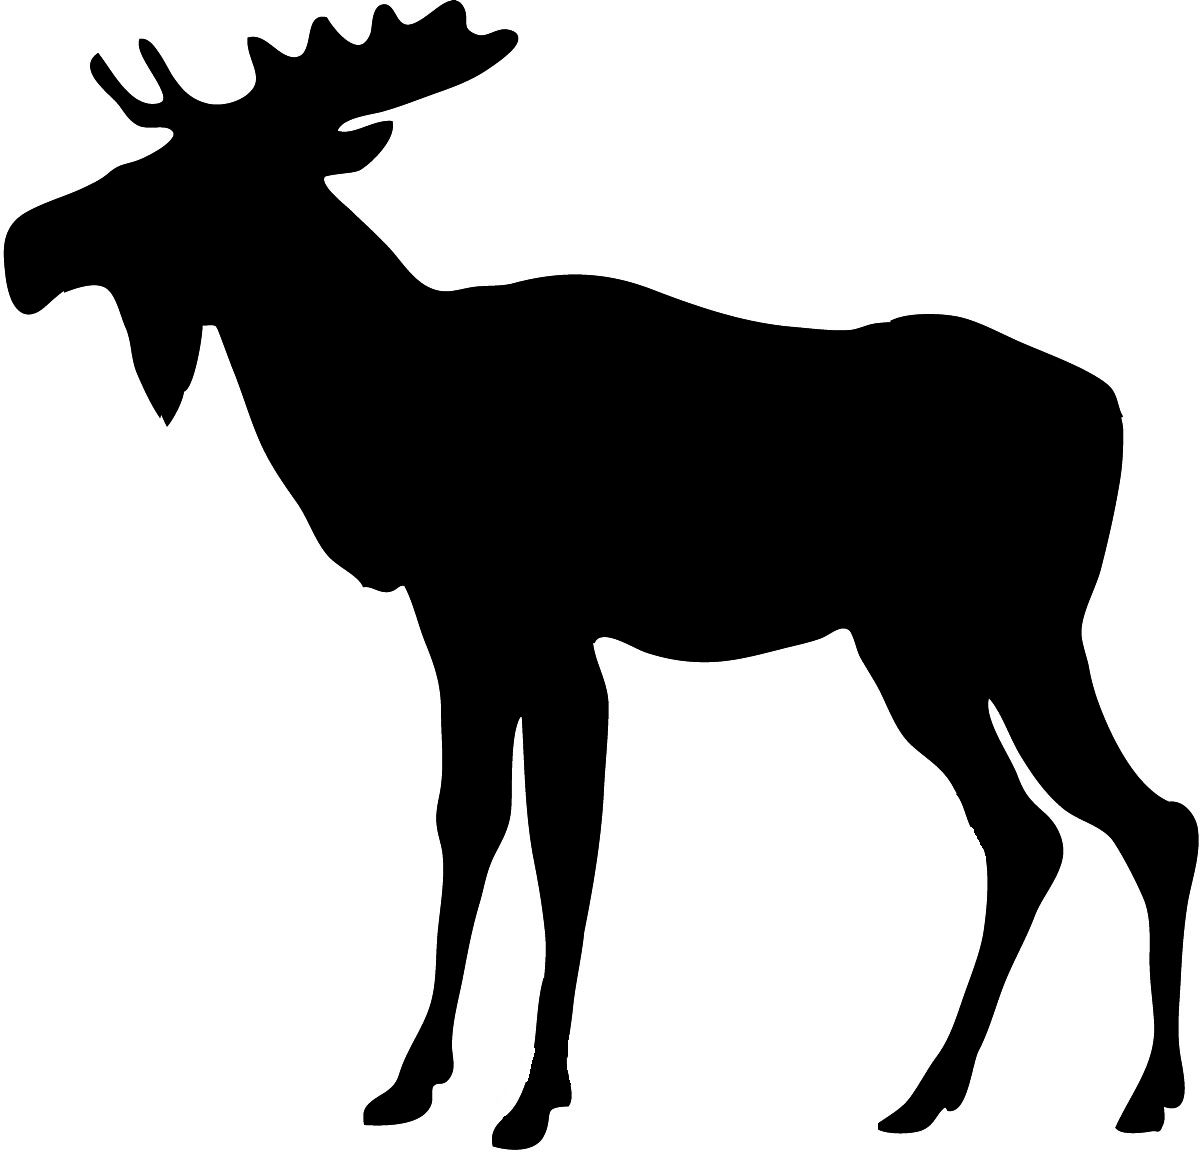 1200x1153 Free Moose Clipart Black and White Image